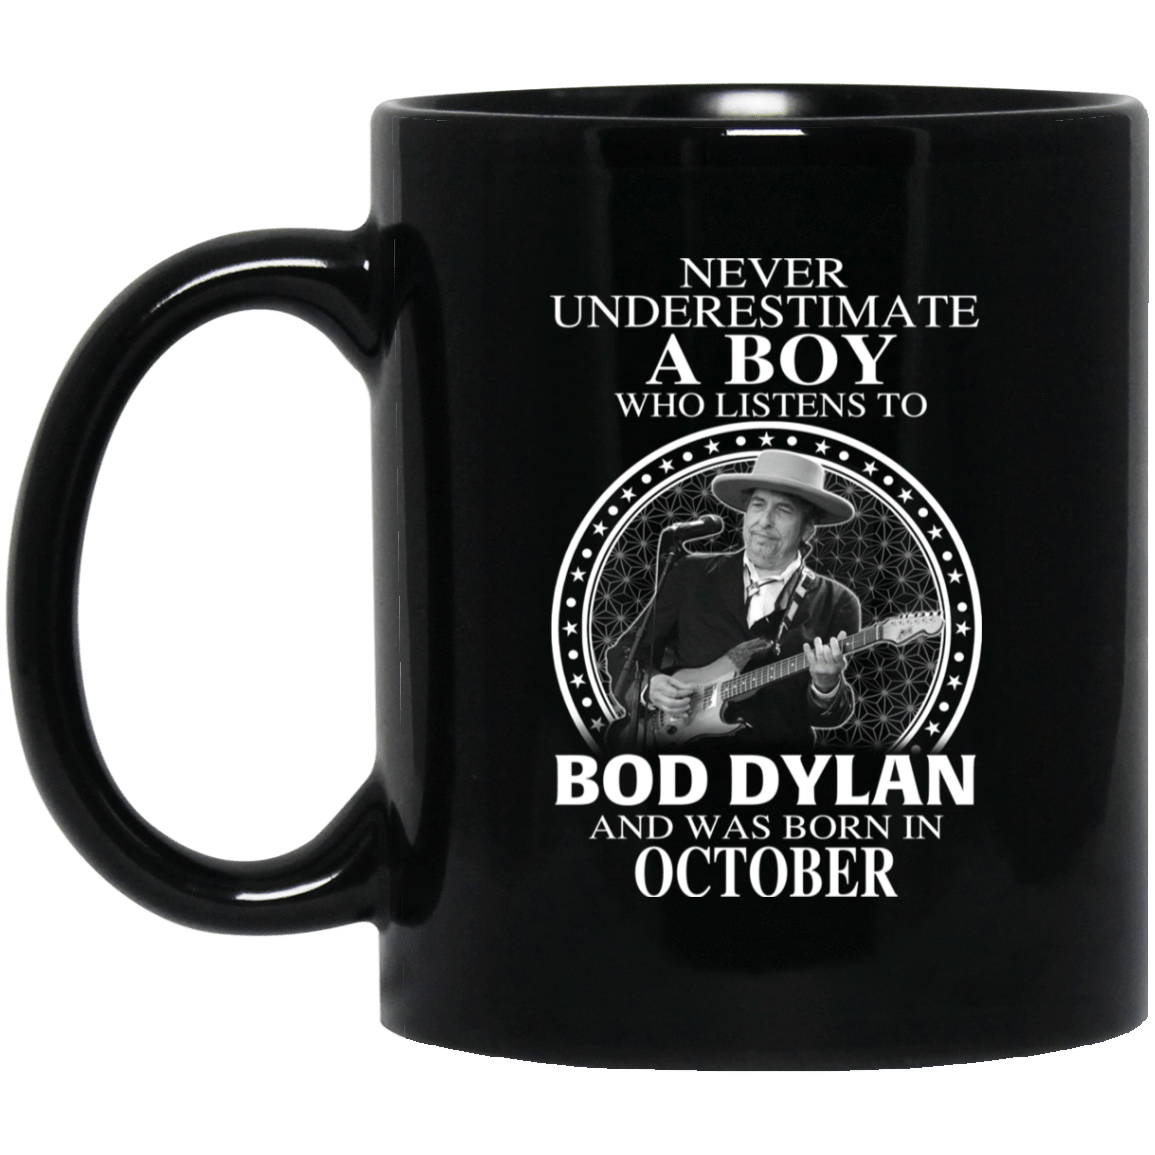 A Boy Who Listens To Bob Dylan And Was Born In October Mug 1065-10181-76153782-49307 - Tee Ript